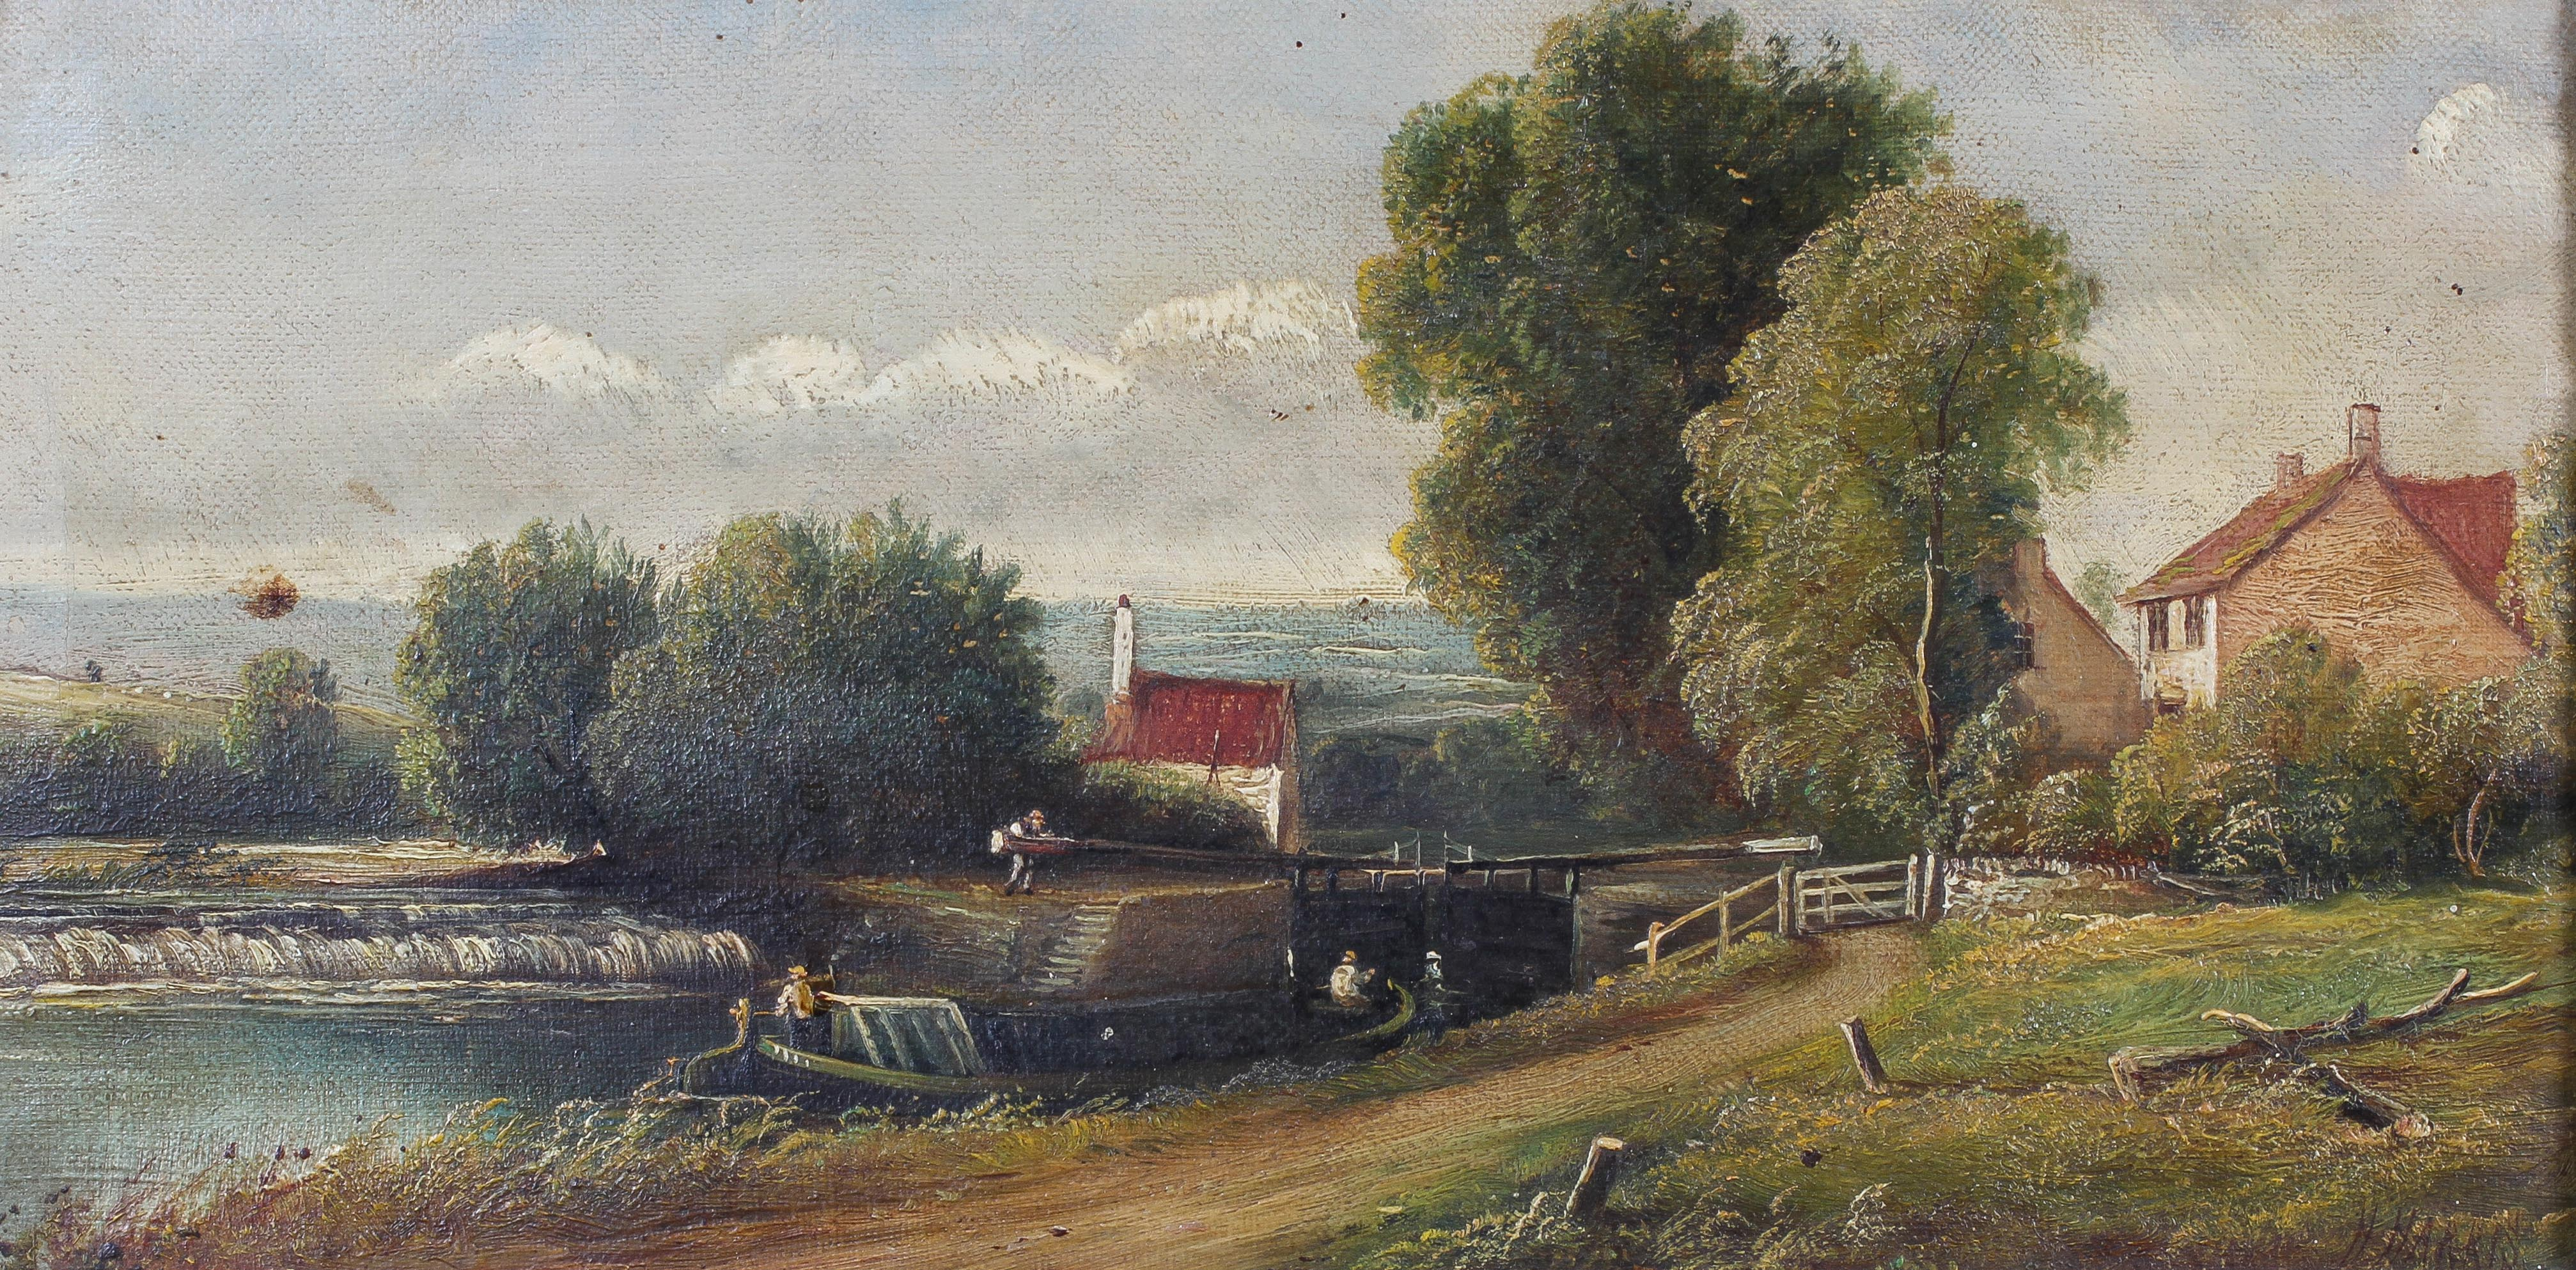 H Harris, three rural landscapes, oil on canvas, within giltwood frames, each signed, - Image 2 of 4